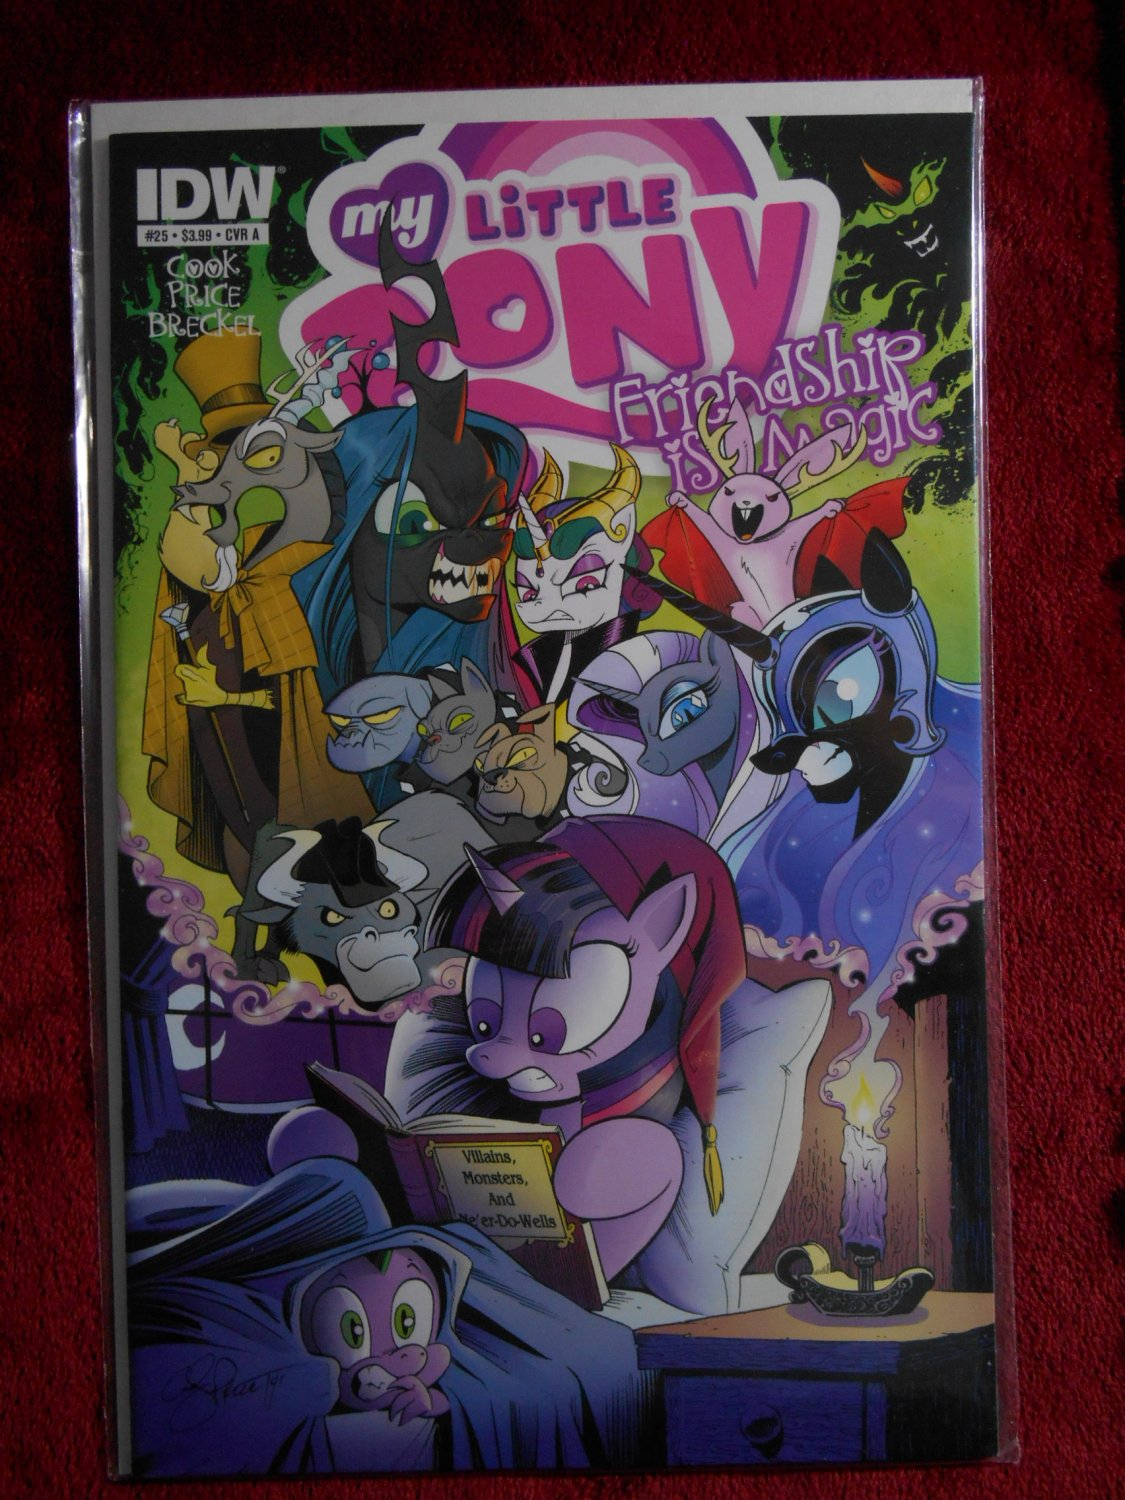 My Little Pony Friendship is Magic Comic - # 25 - Rare - IDW Comics - Very Fine -